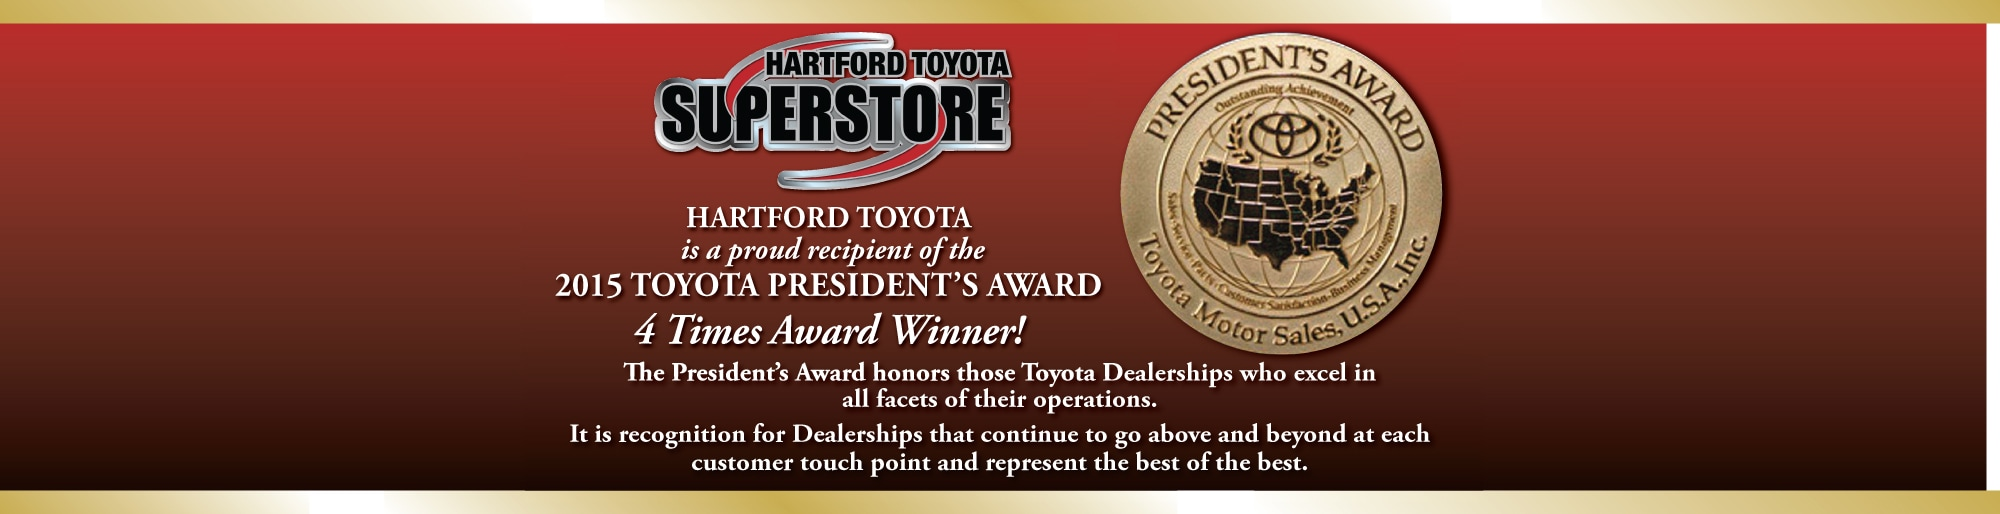 Hartford toyota superstore new toyota dealer used car dealership serving manchester bristol and middletown ct